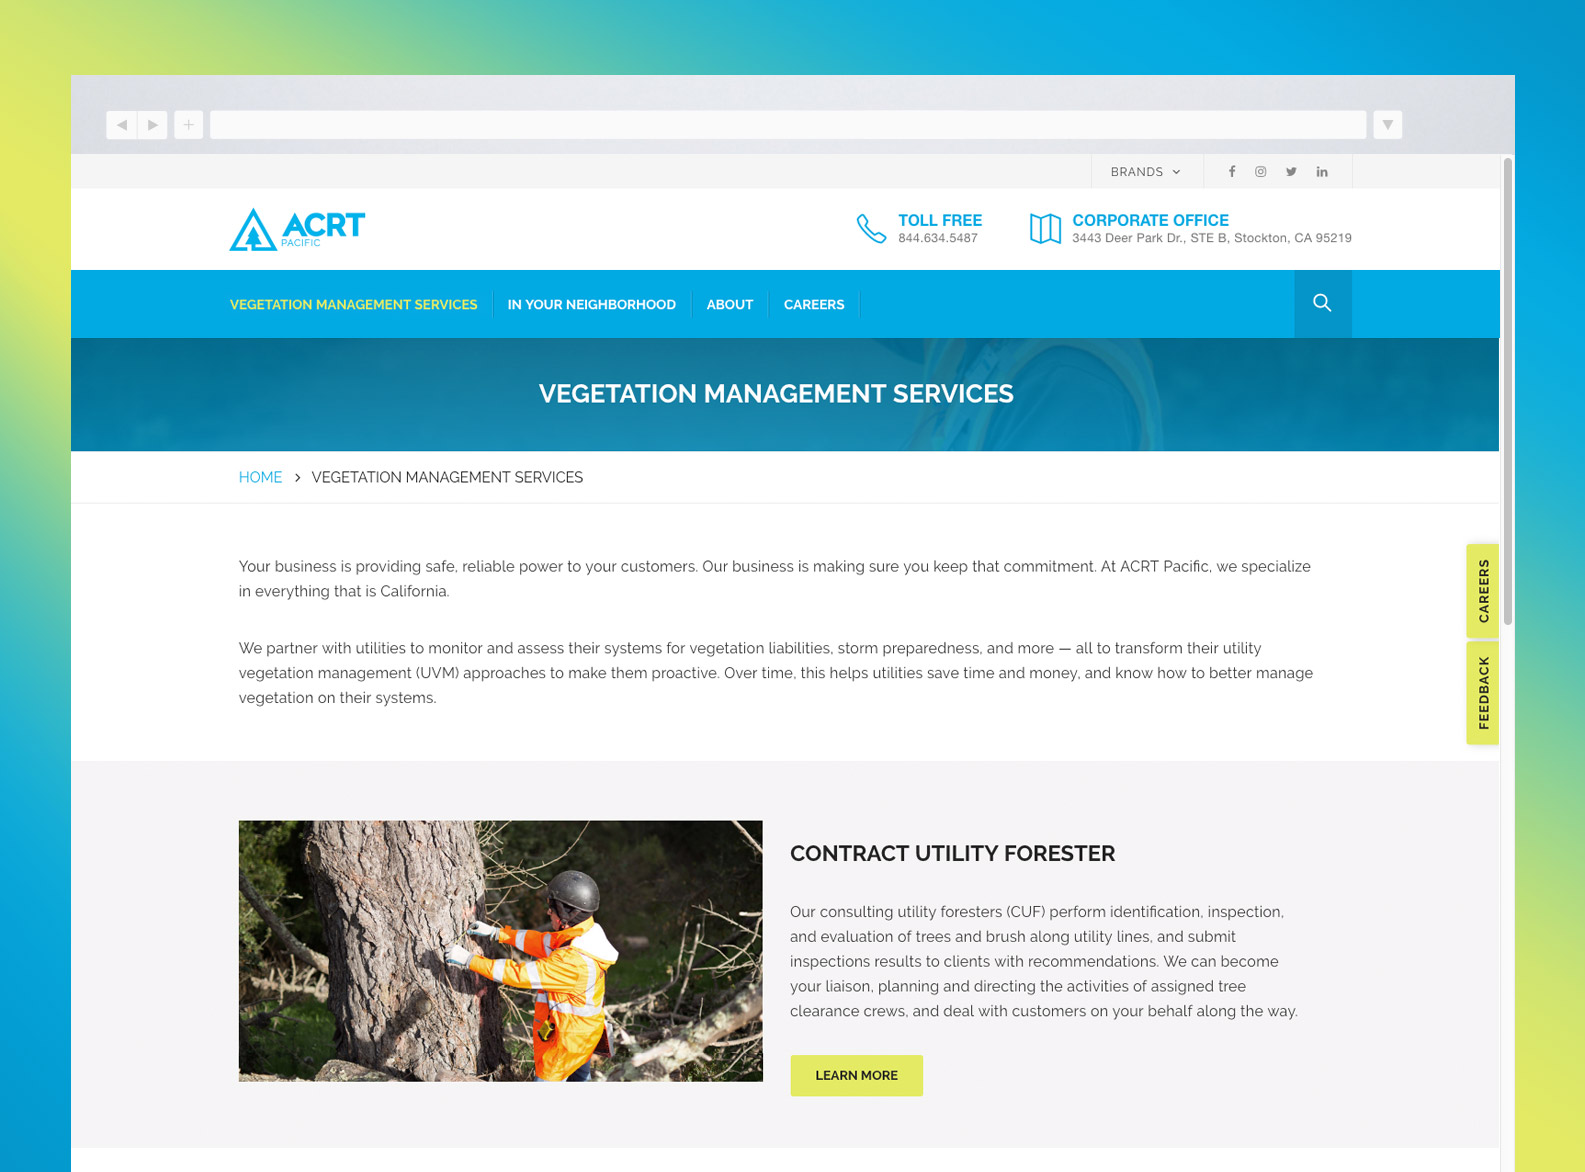 ACRT Pacific Website Services